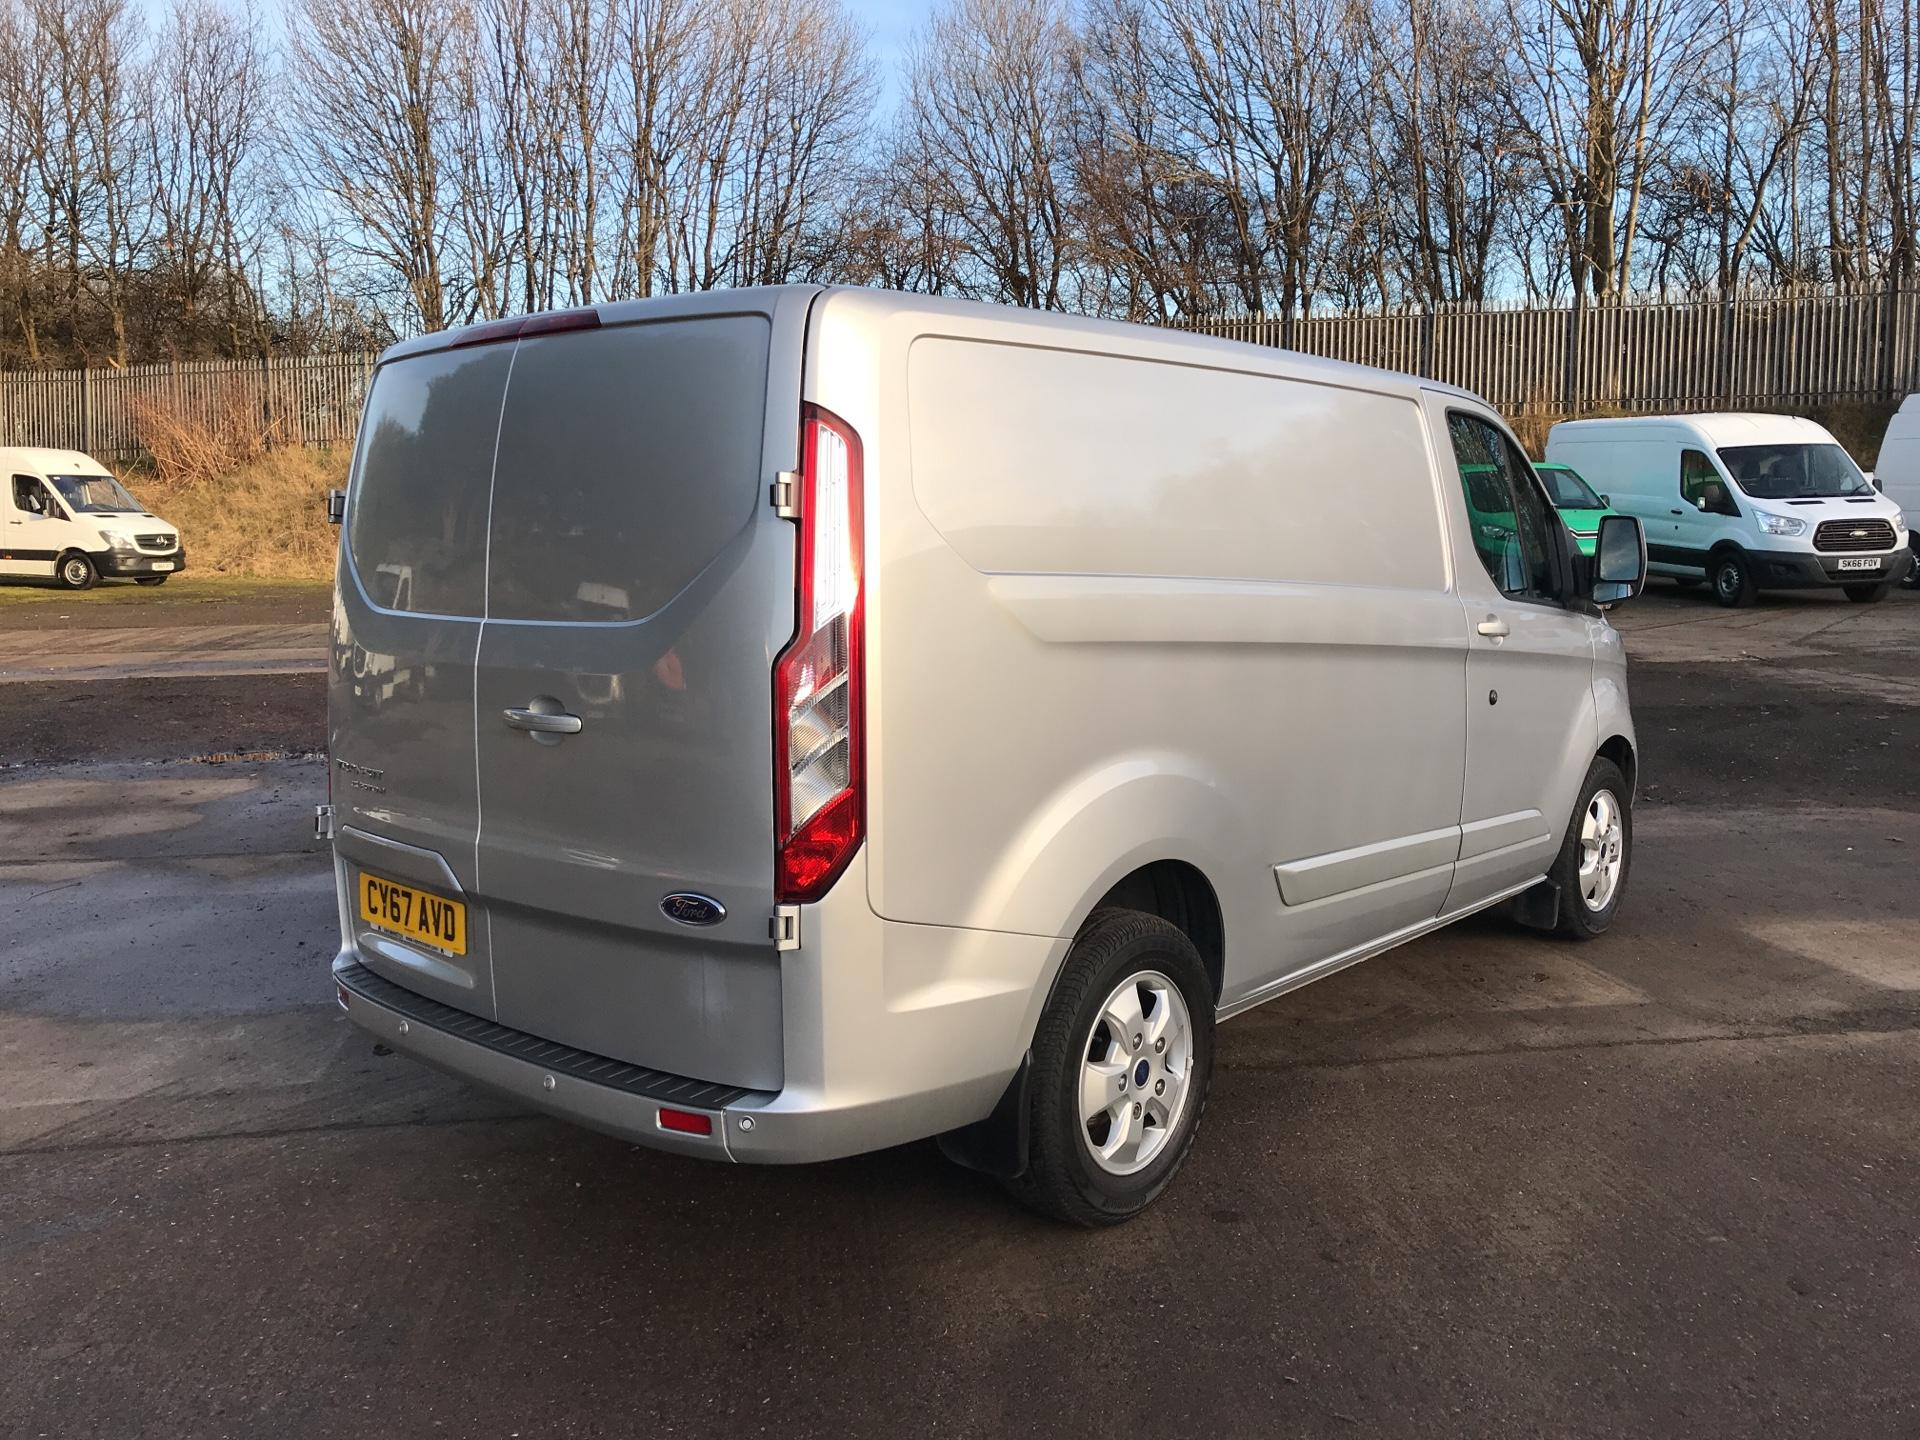 2017 Ford Transit Custom 270 L1 DIESEL FWD 2.0 TDCI 130PS LOW ROOF LIMITED VAN EURO 6 (CY67AVD) Image 3